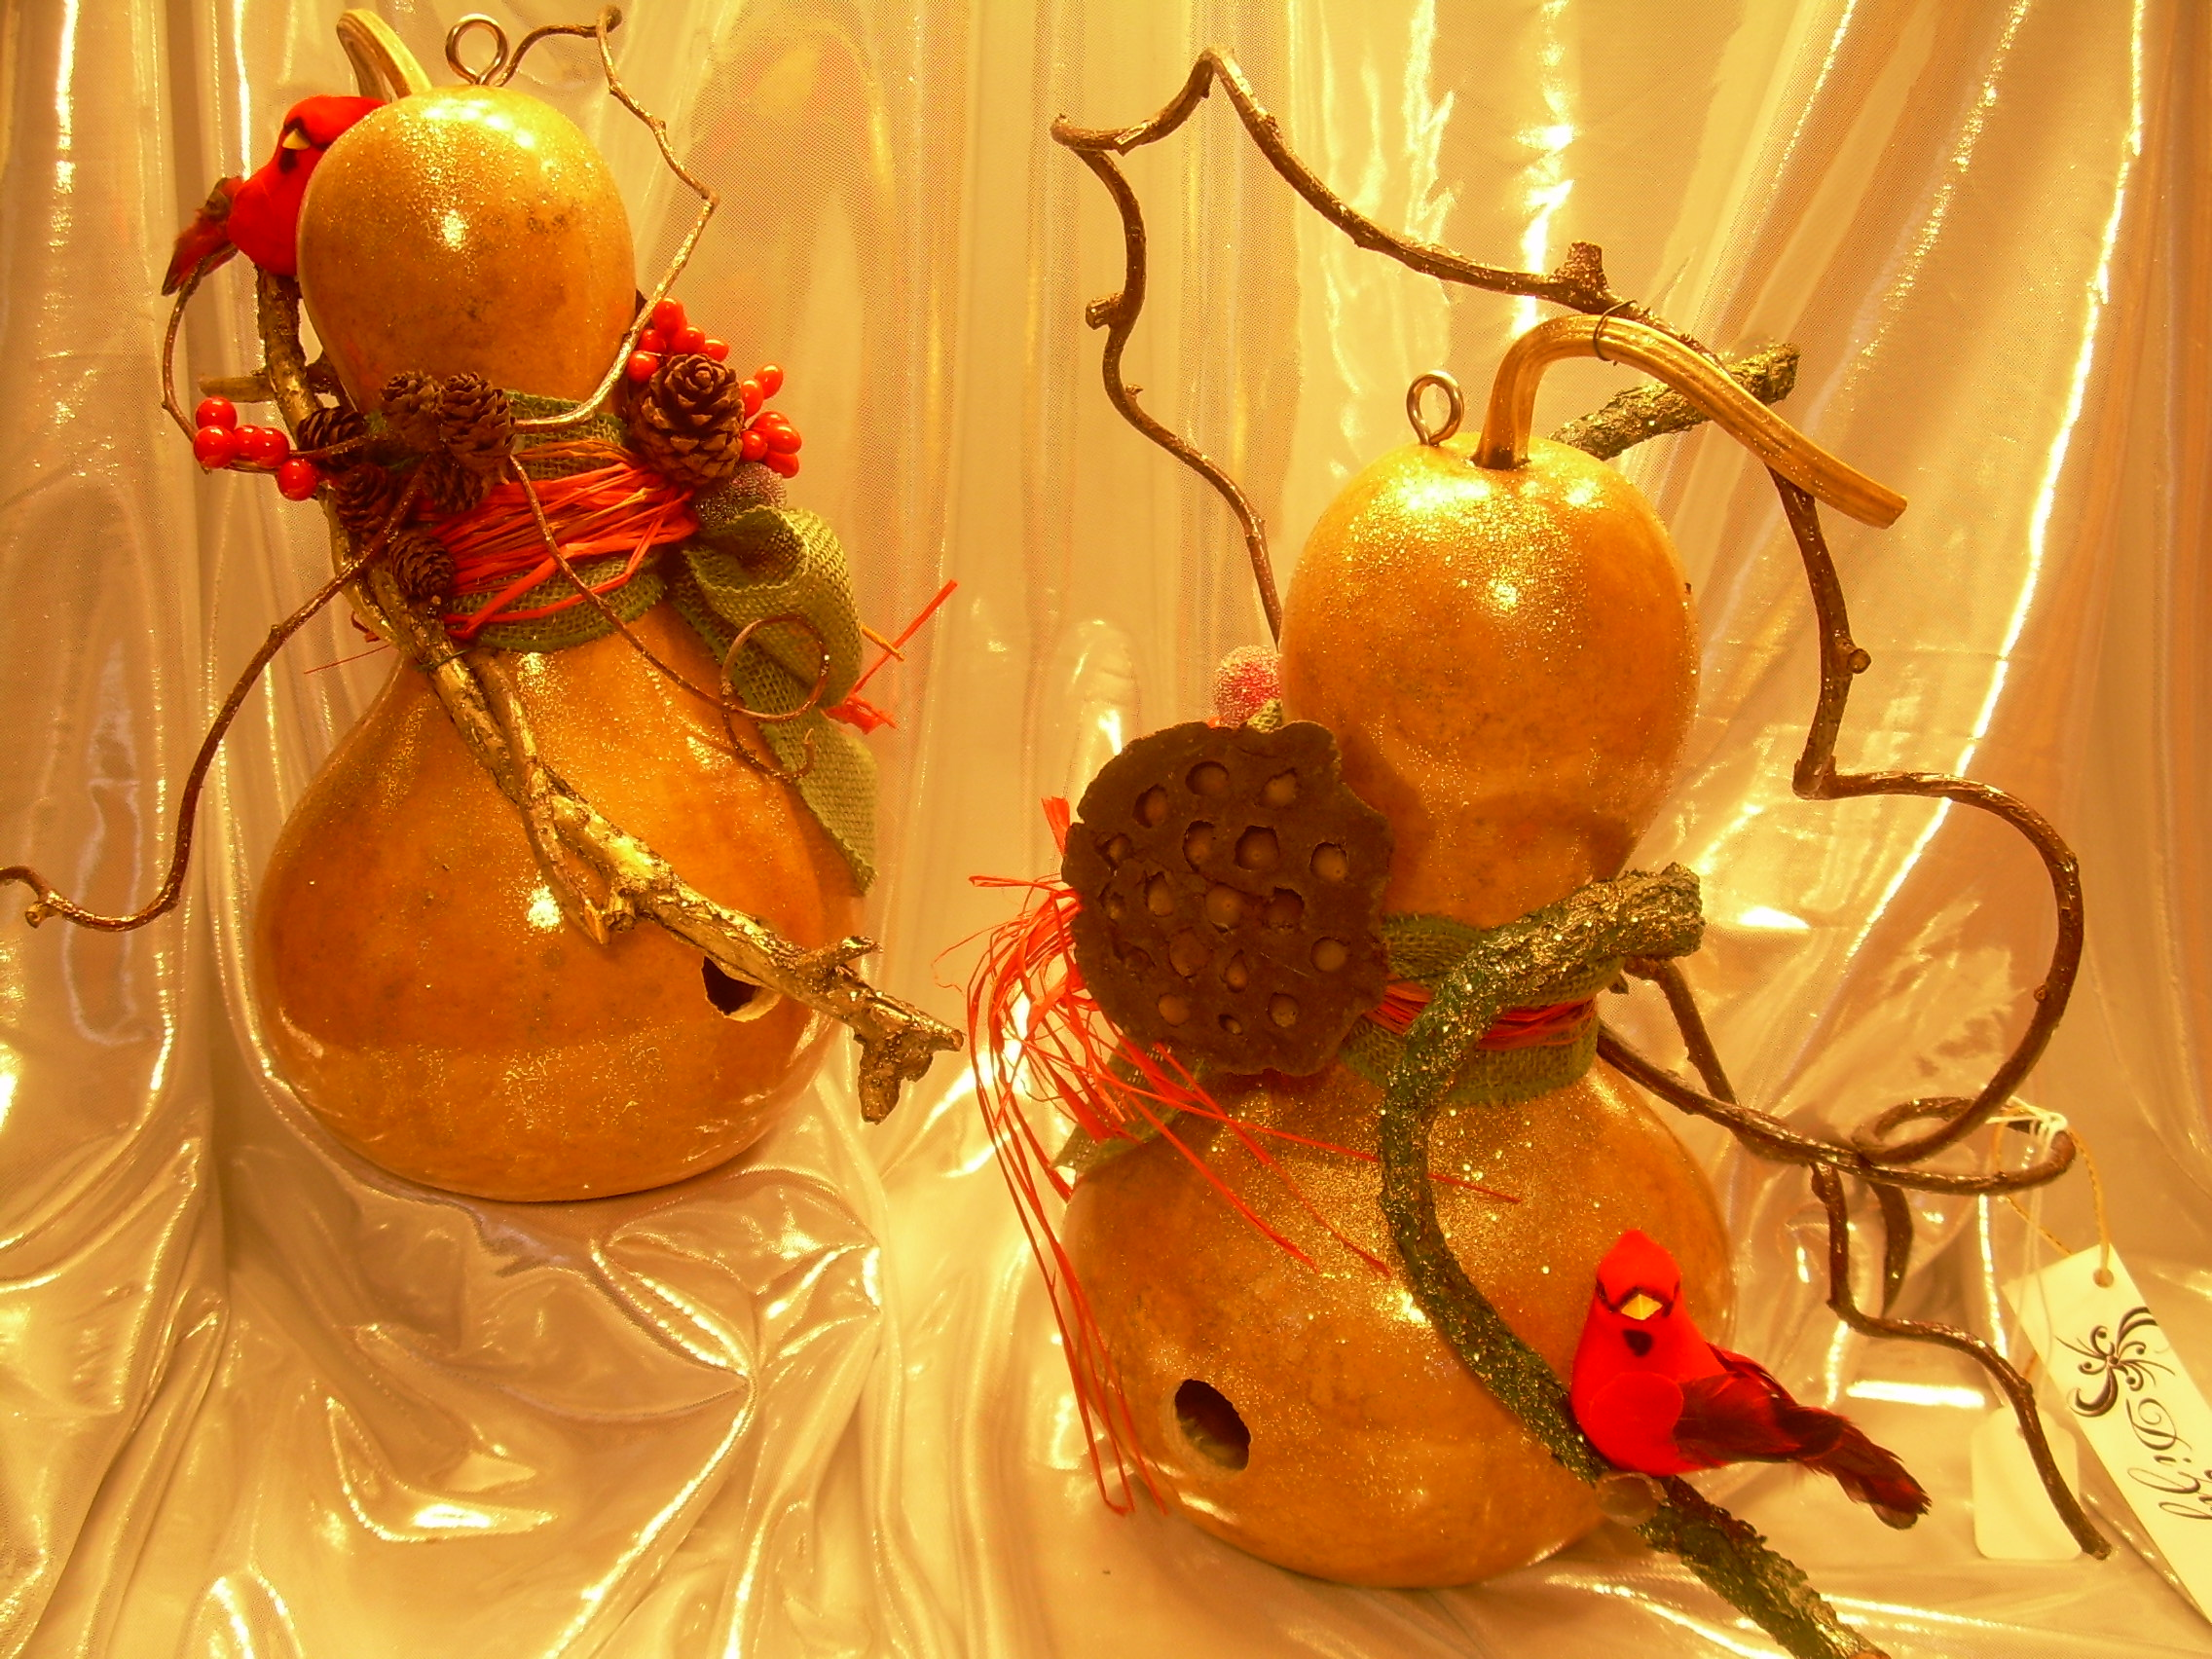 full-size birdhouse gourds, natural holiday